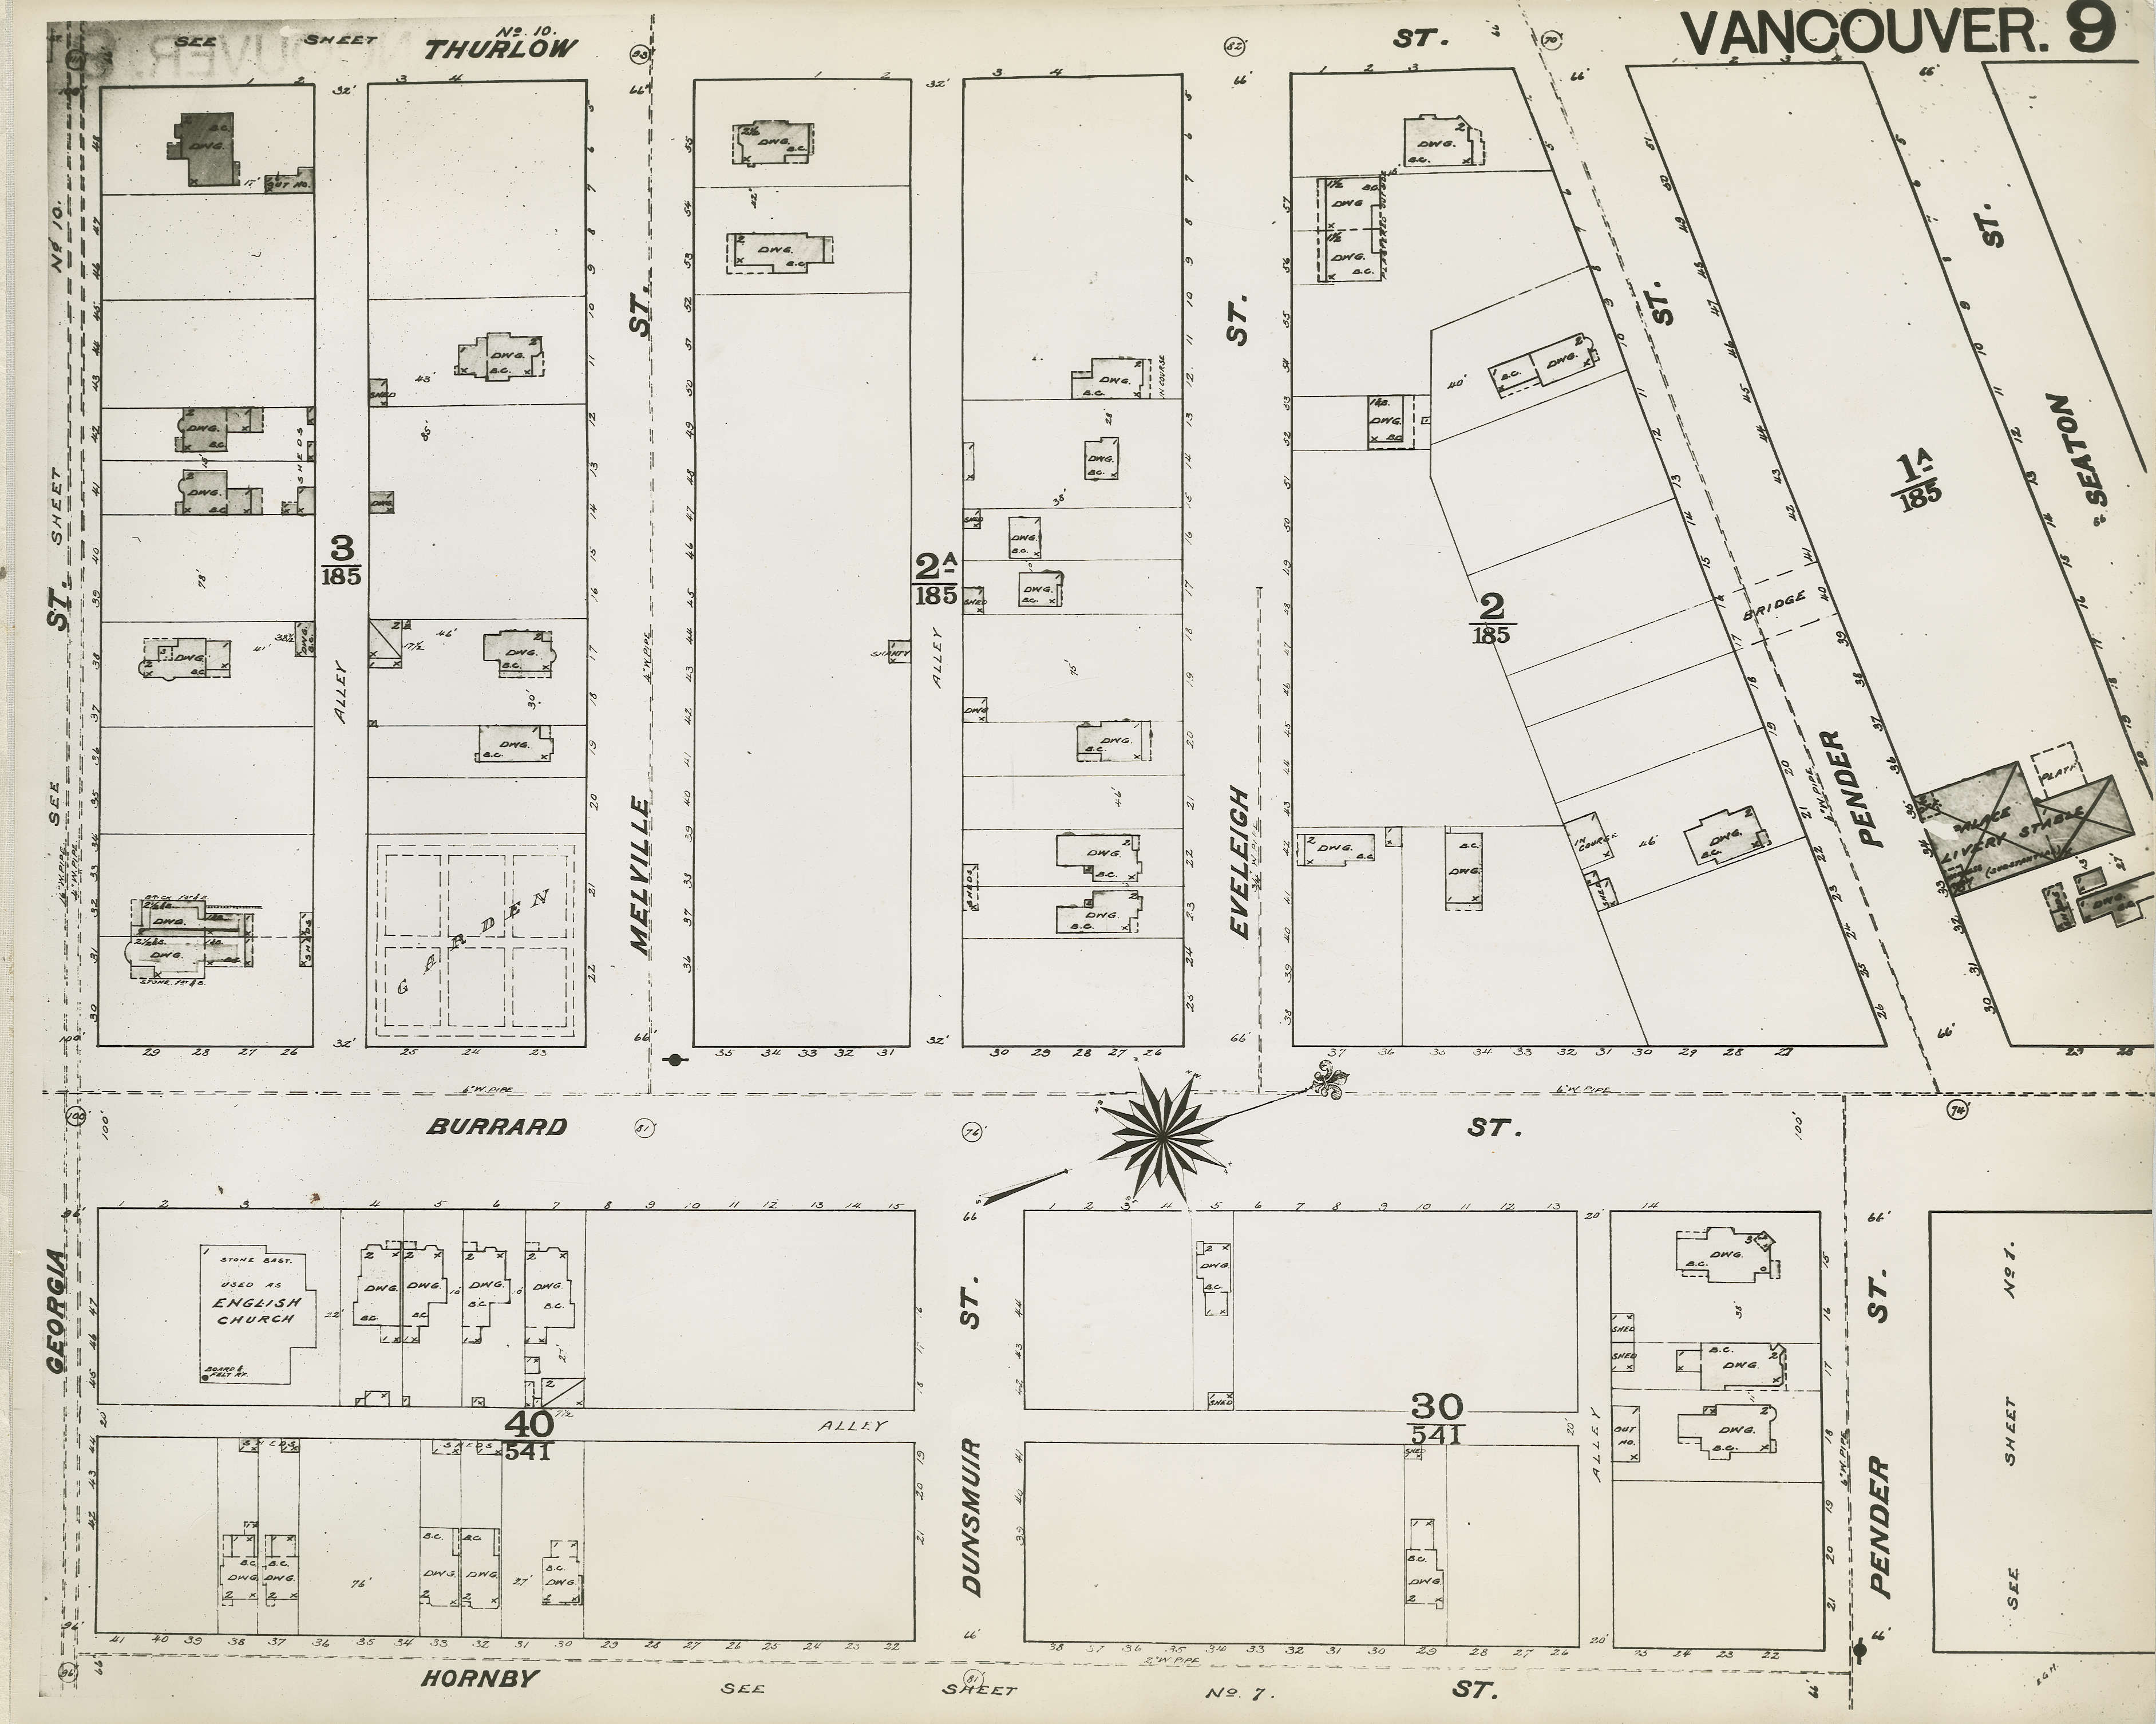 Map Of Georgia Fire.Plan Of Vancouver 1889 Fire Map Seaton Street To Thurlow